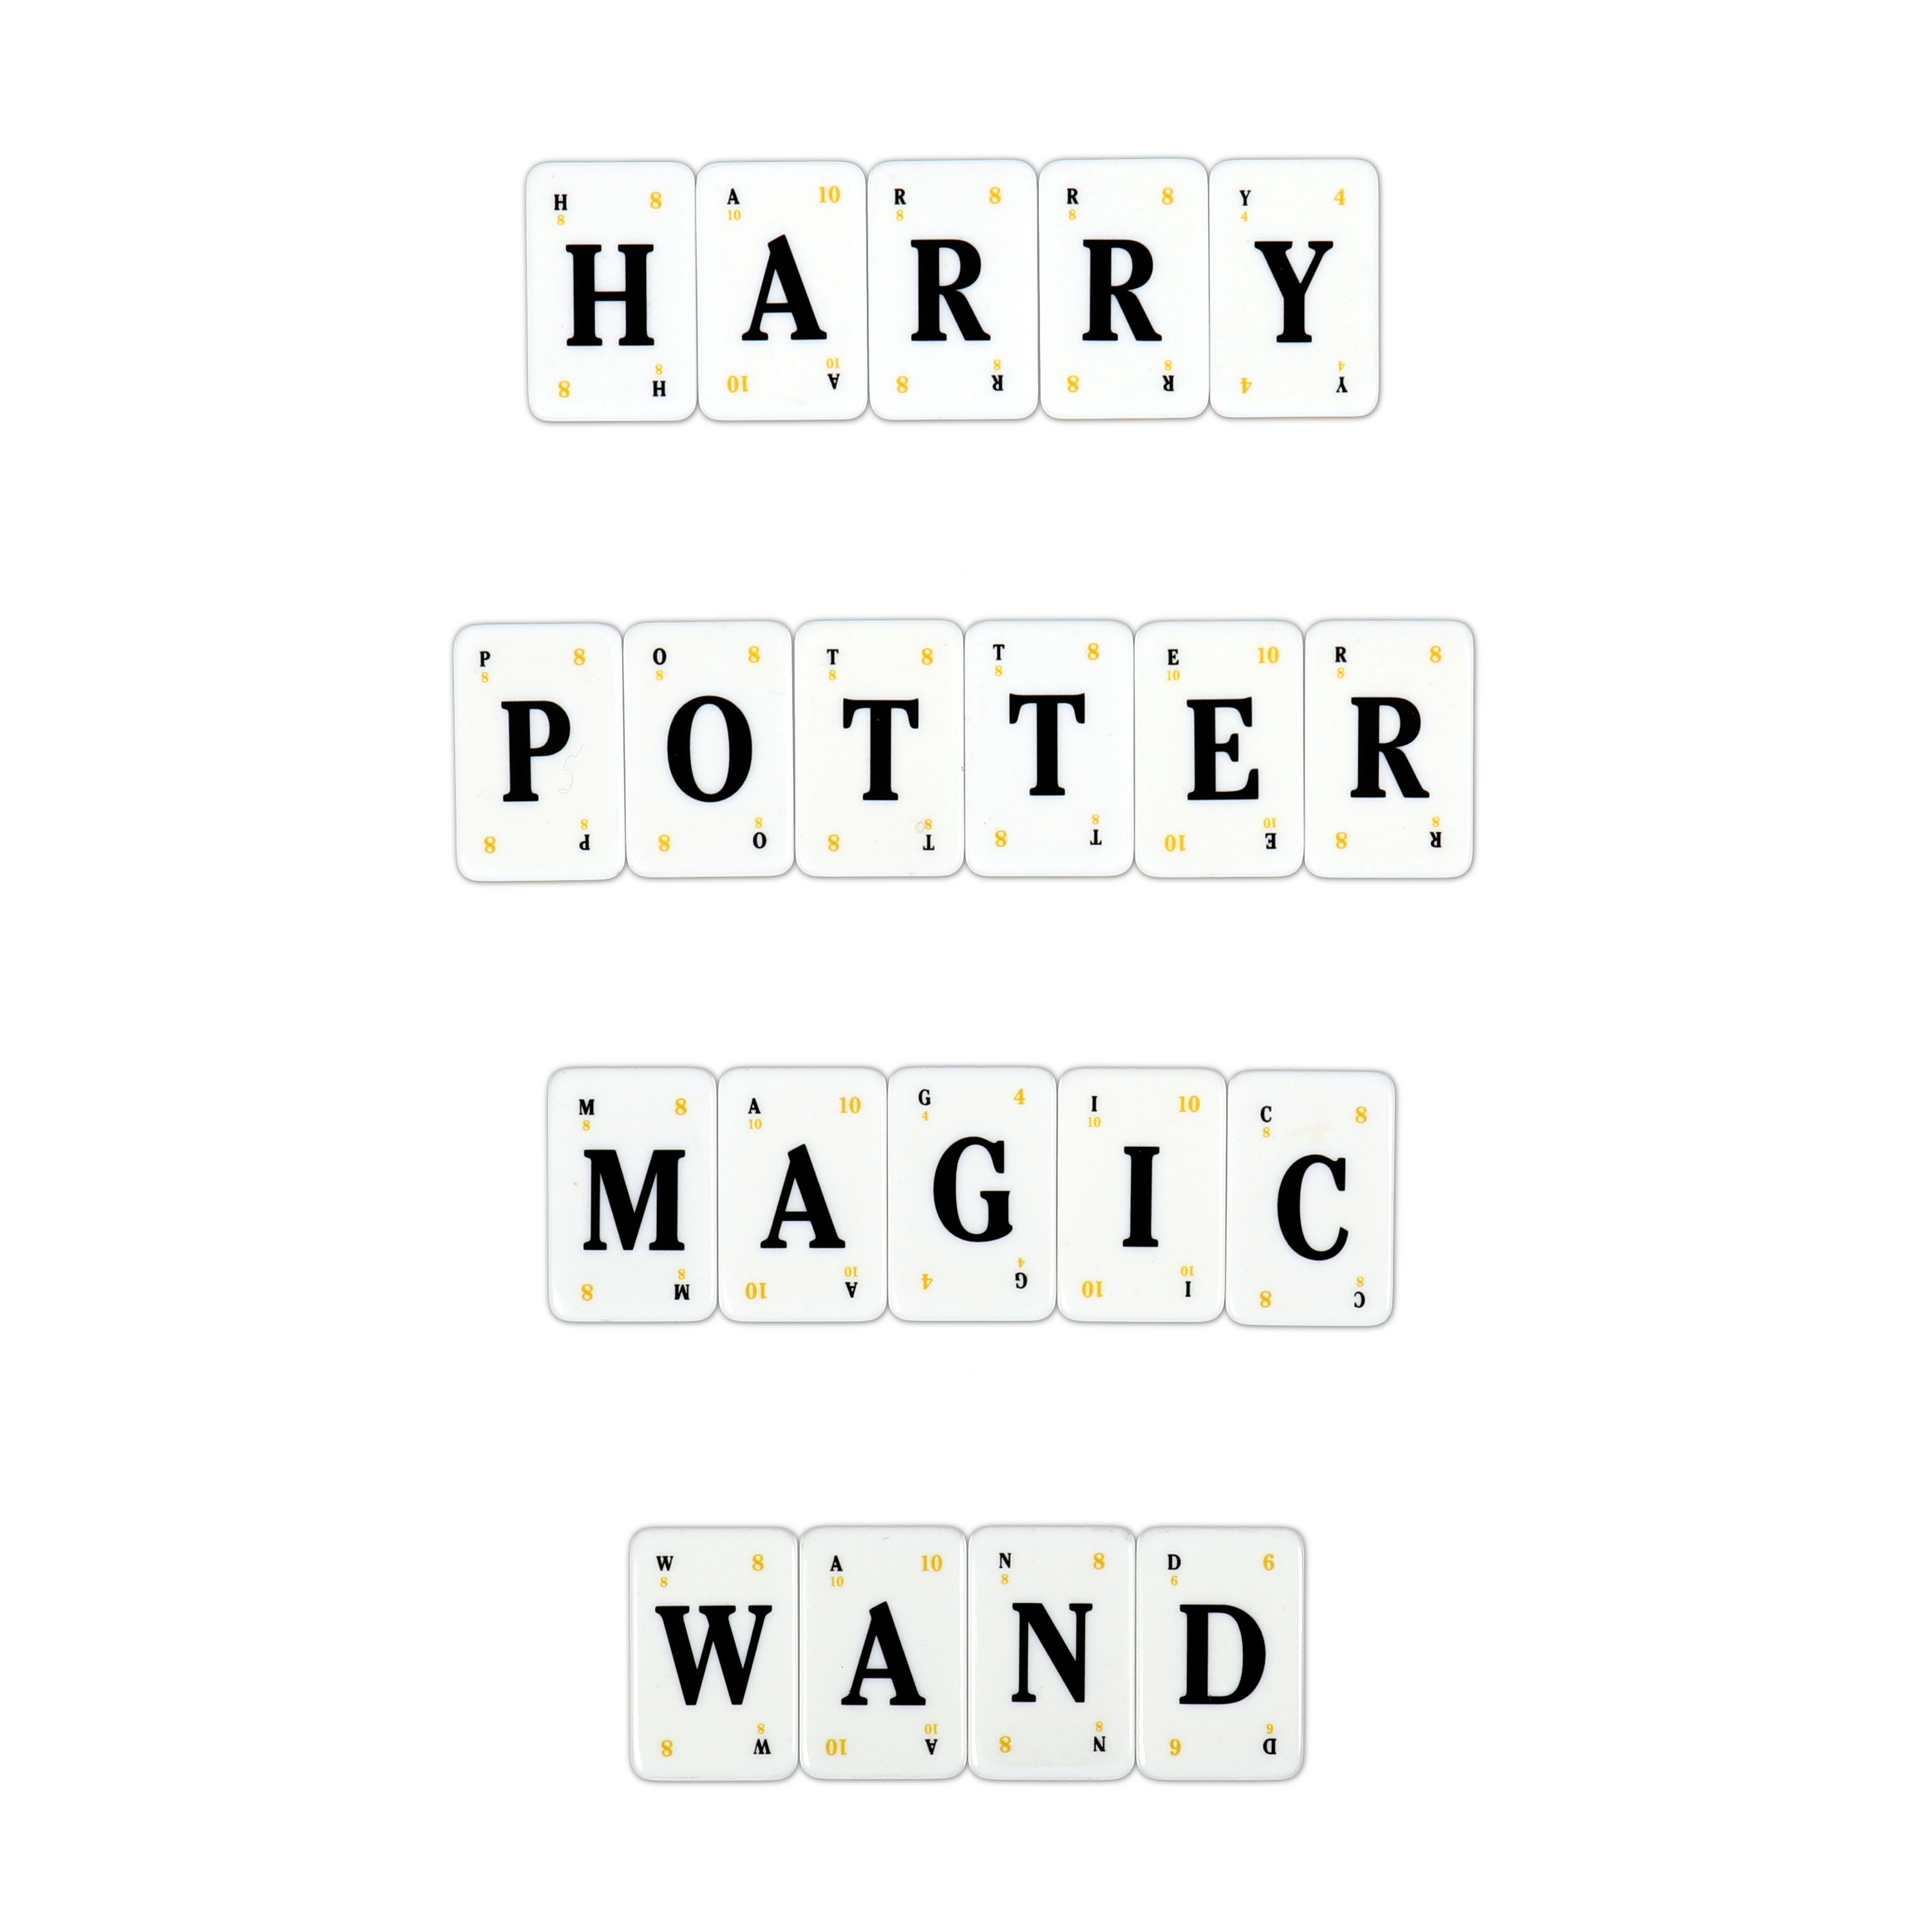 """Harry Potter Lexicon GO! tiles spelling """"HARRY POTTER MAGIC WAND"""""""